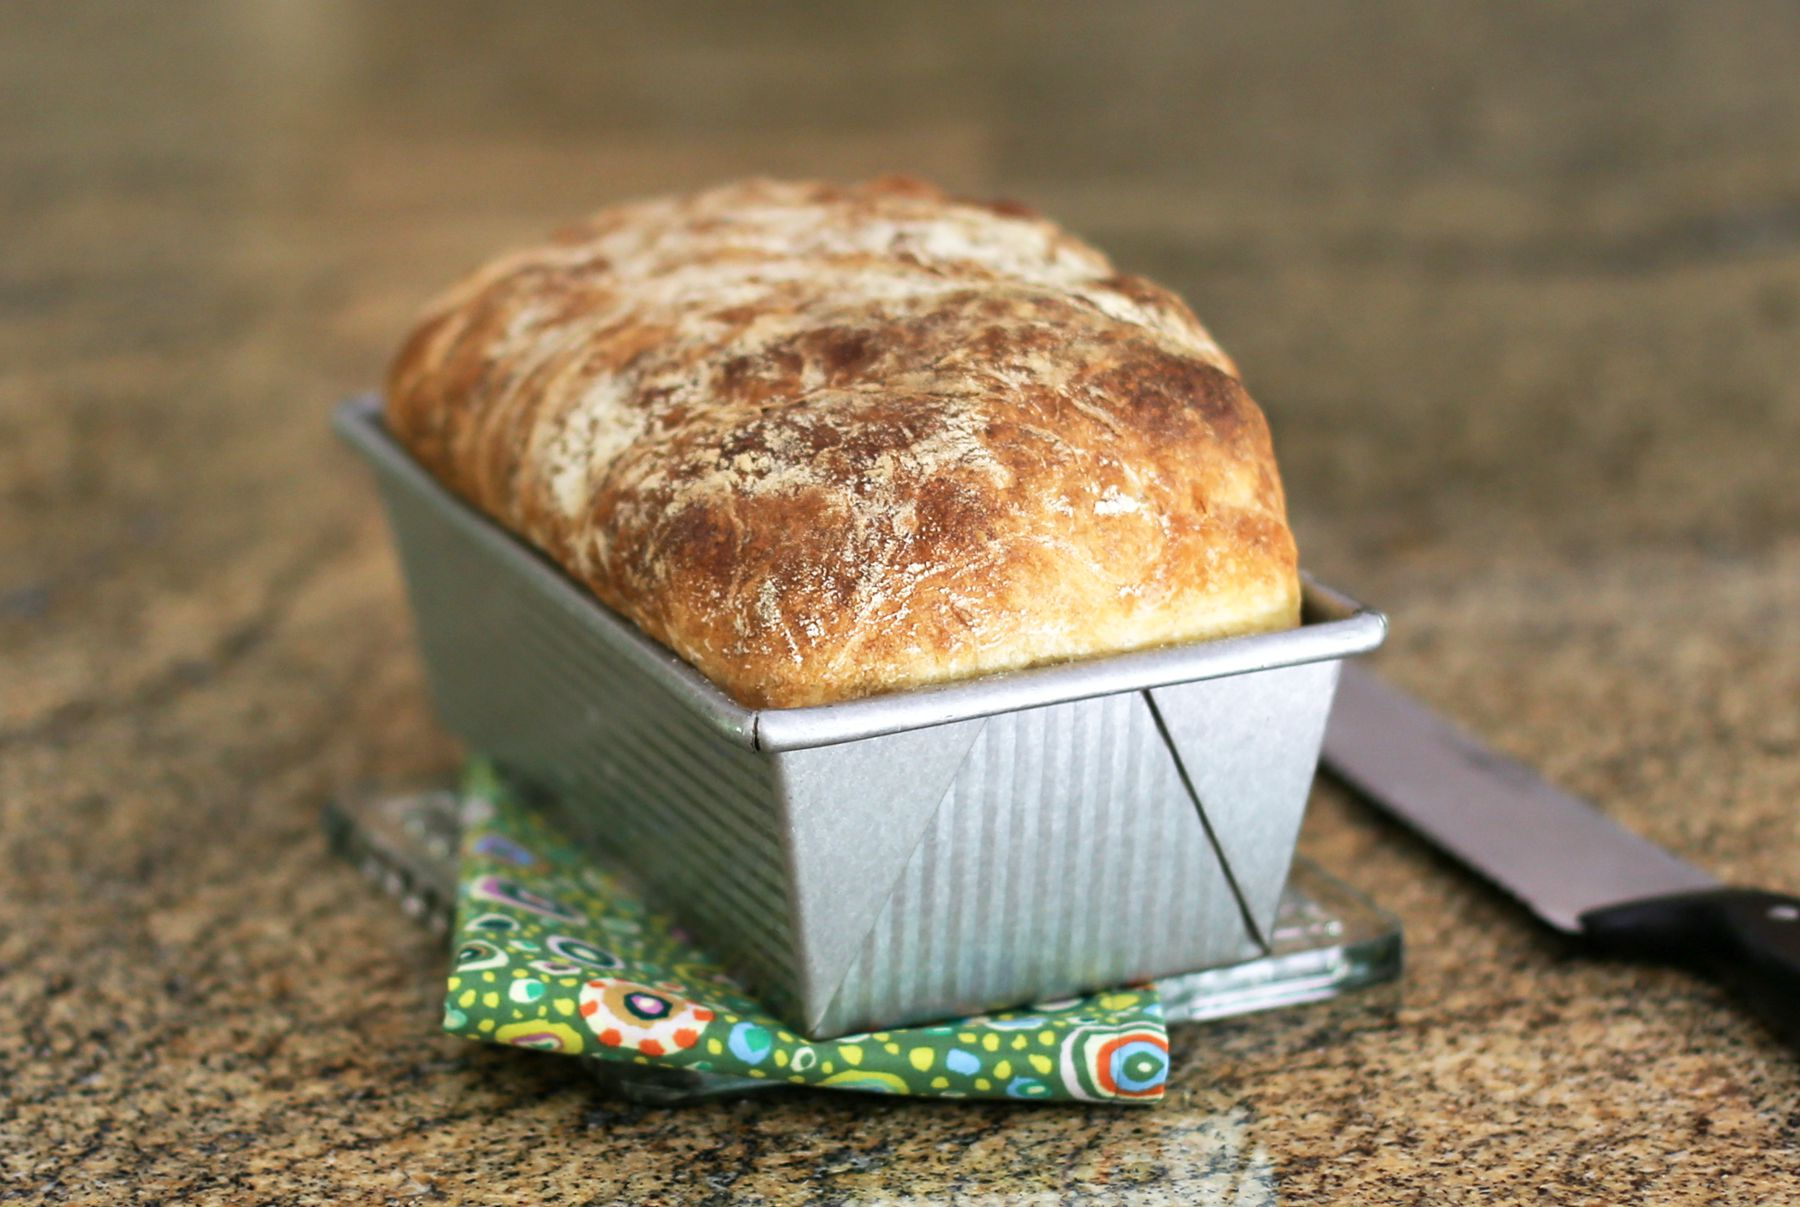 Make a Delicious Loaf of Bread Without Any Kneading